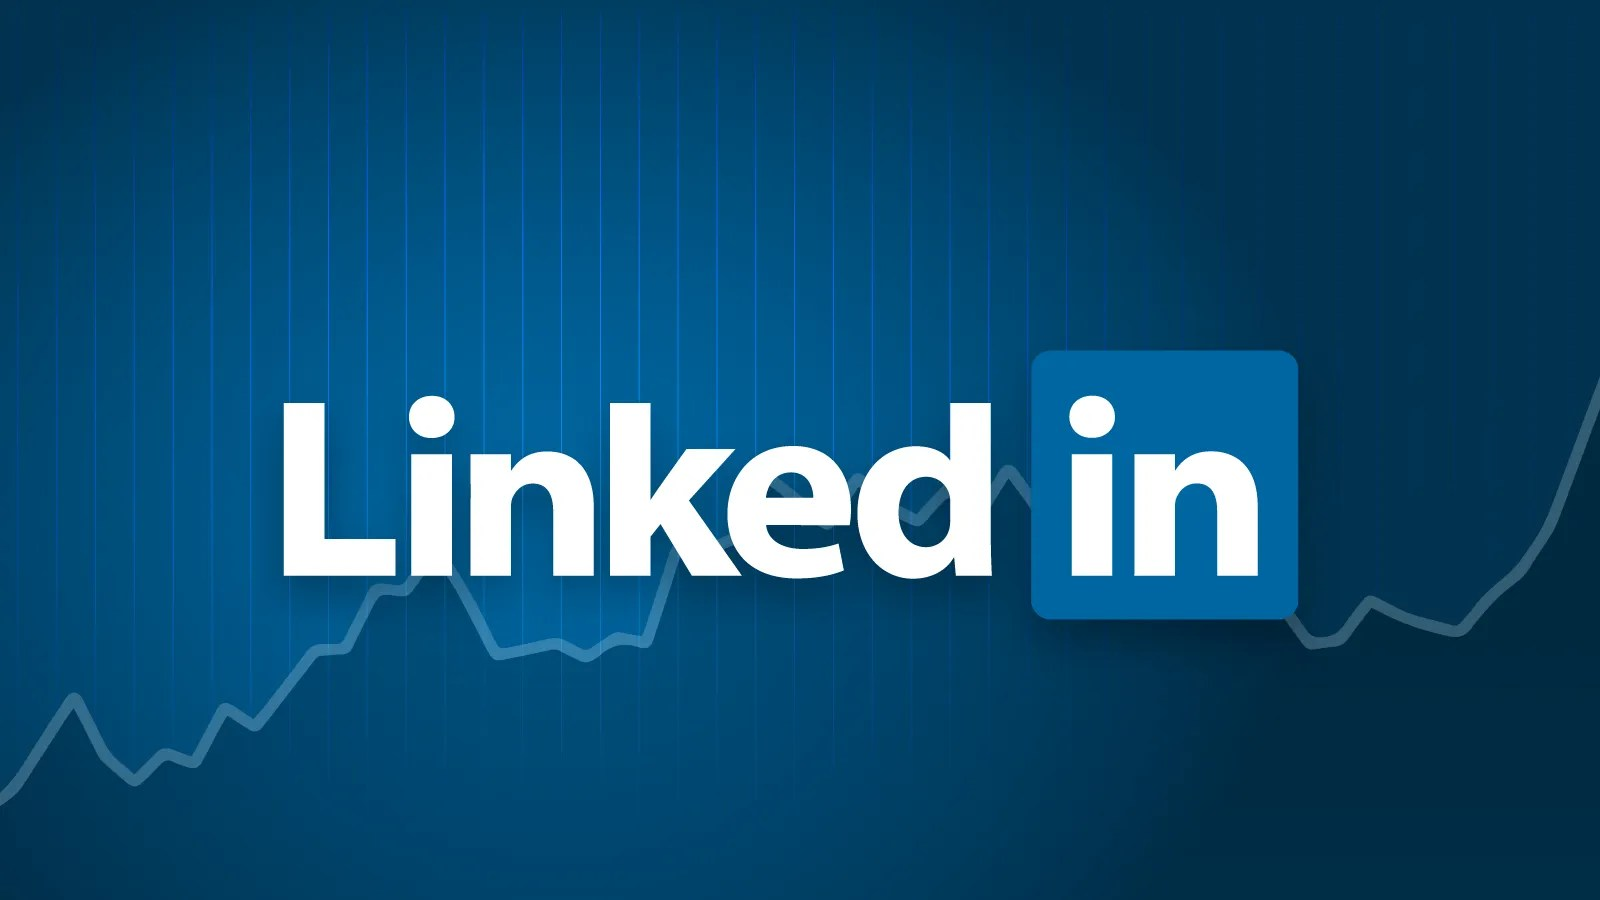 Is LinkedIn the new Netscape or the new Google?